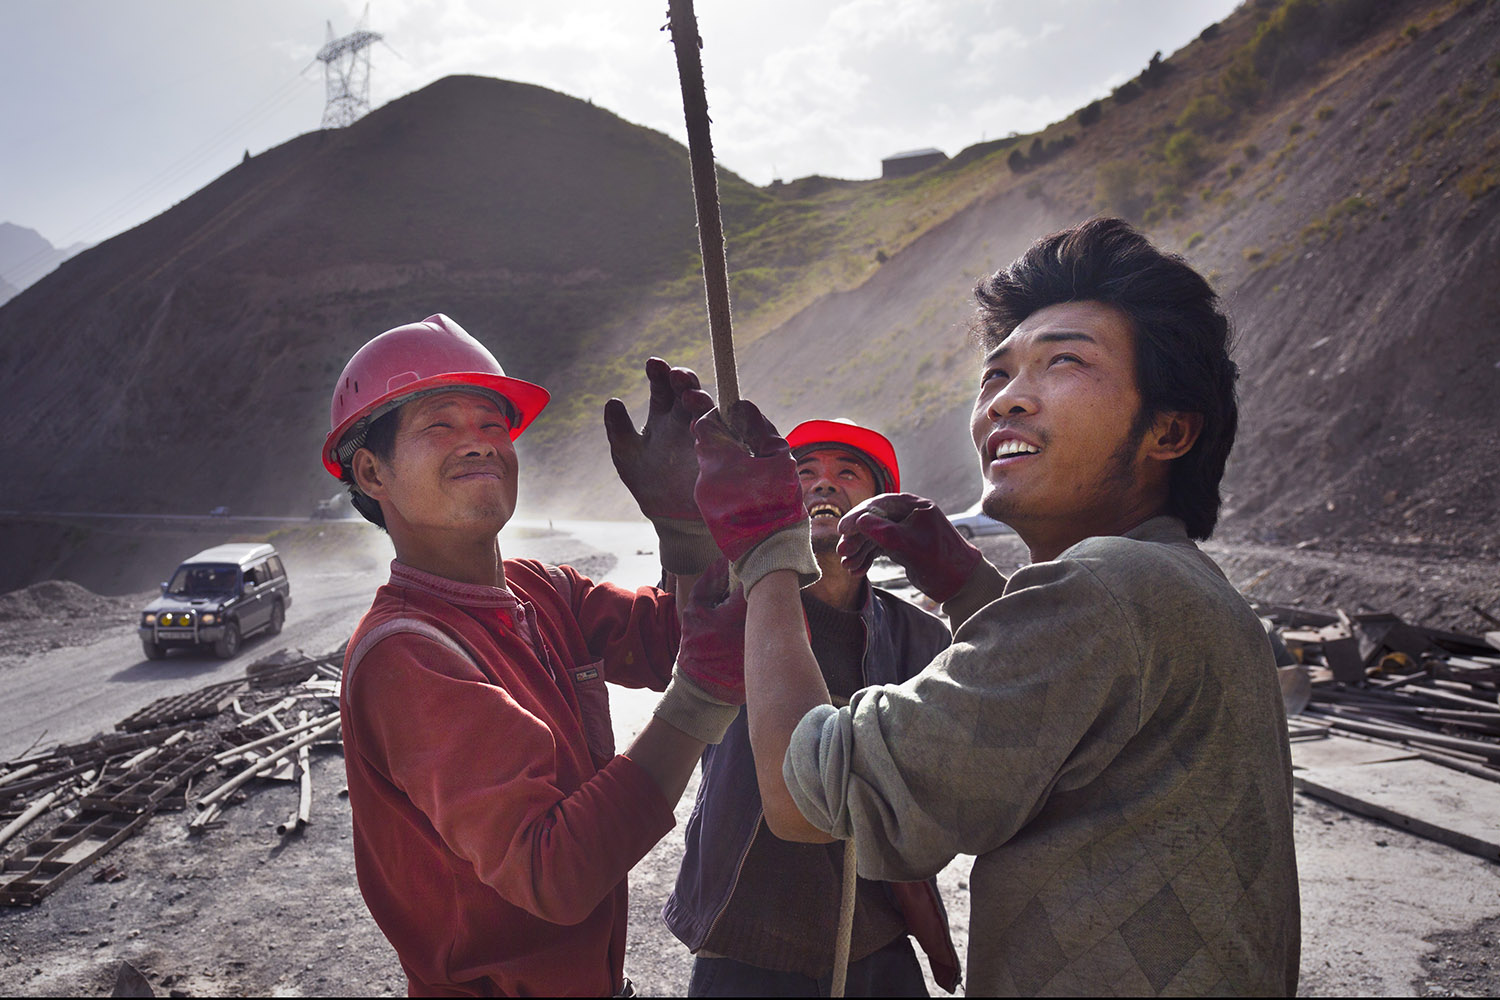 Chinese migrant laborers building a road in northern Tajikistan